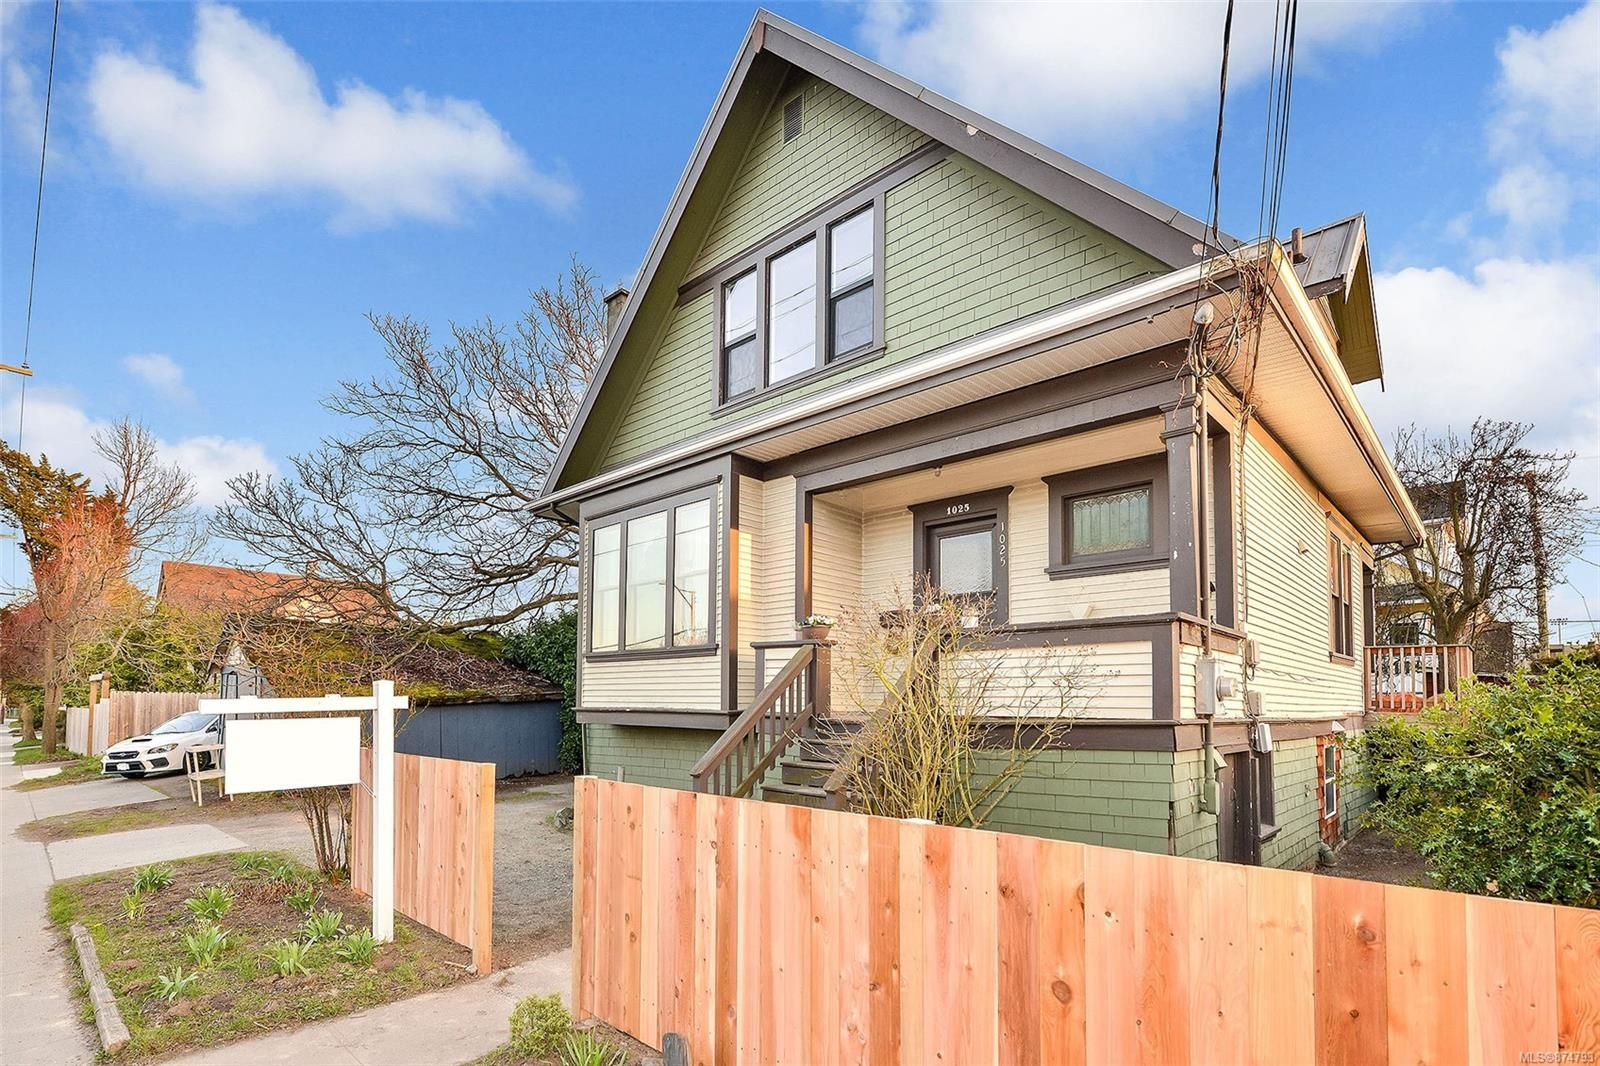 Main Photo: 1025 Bay St in : Vi Central Park House for sale (Victoria)  : MLS®# 874793